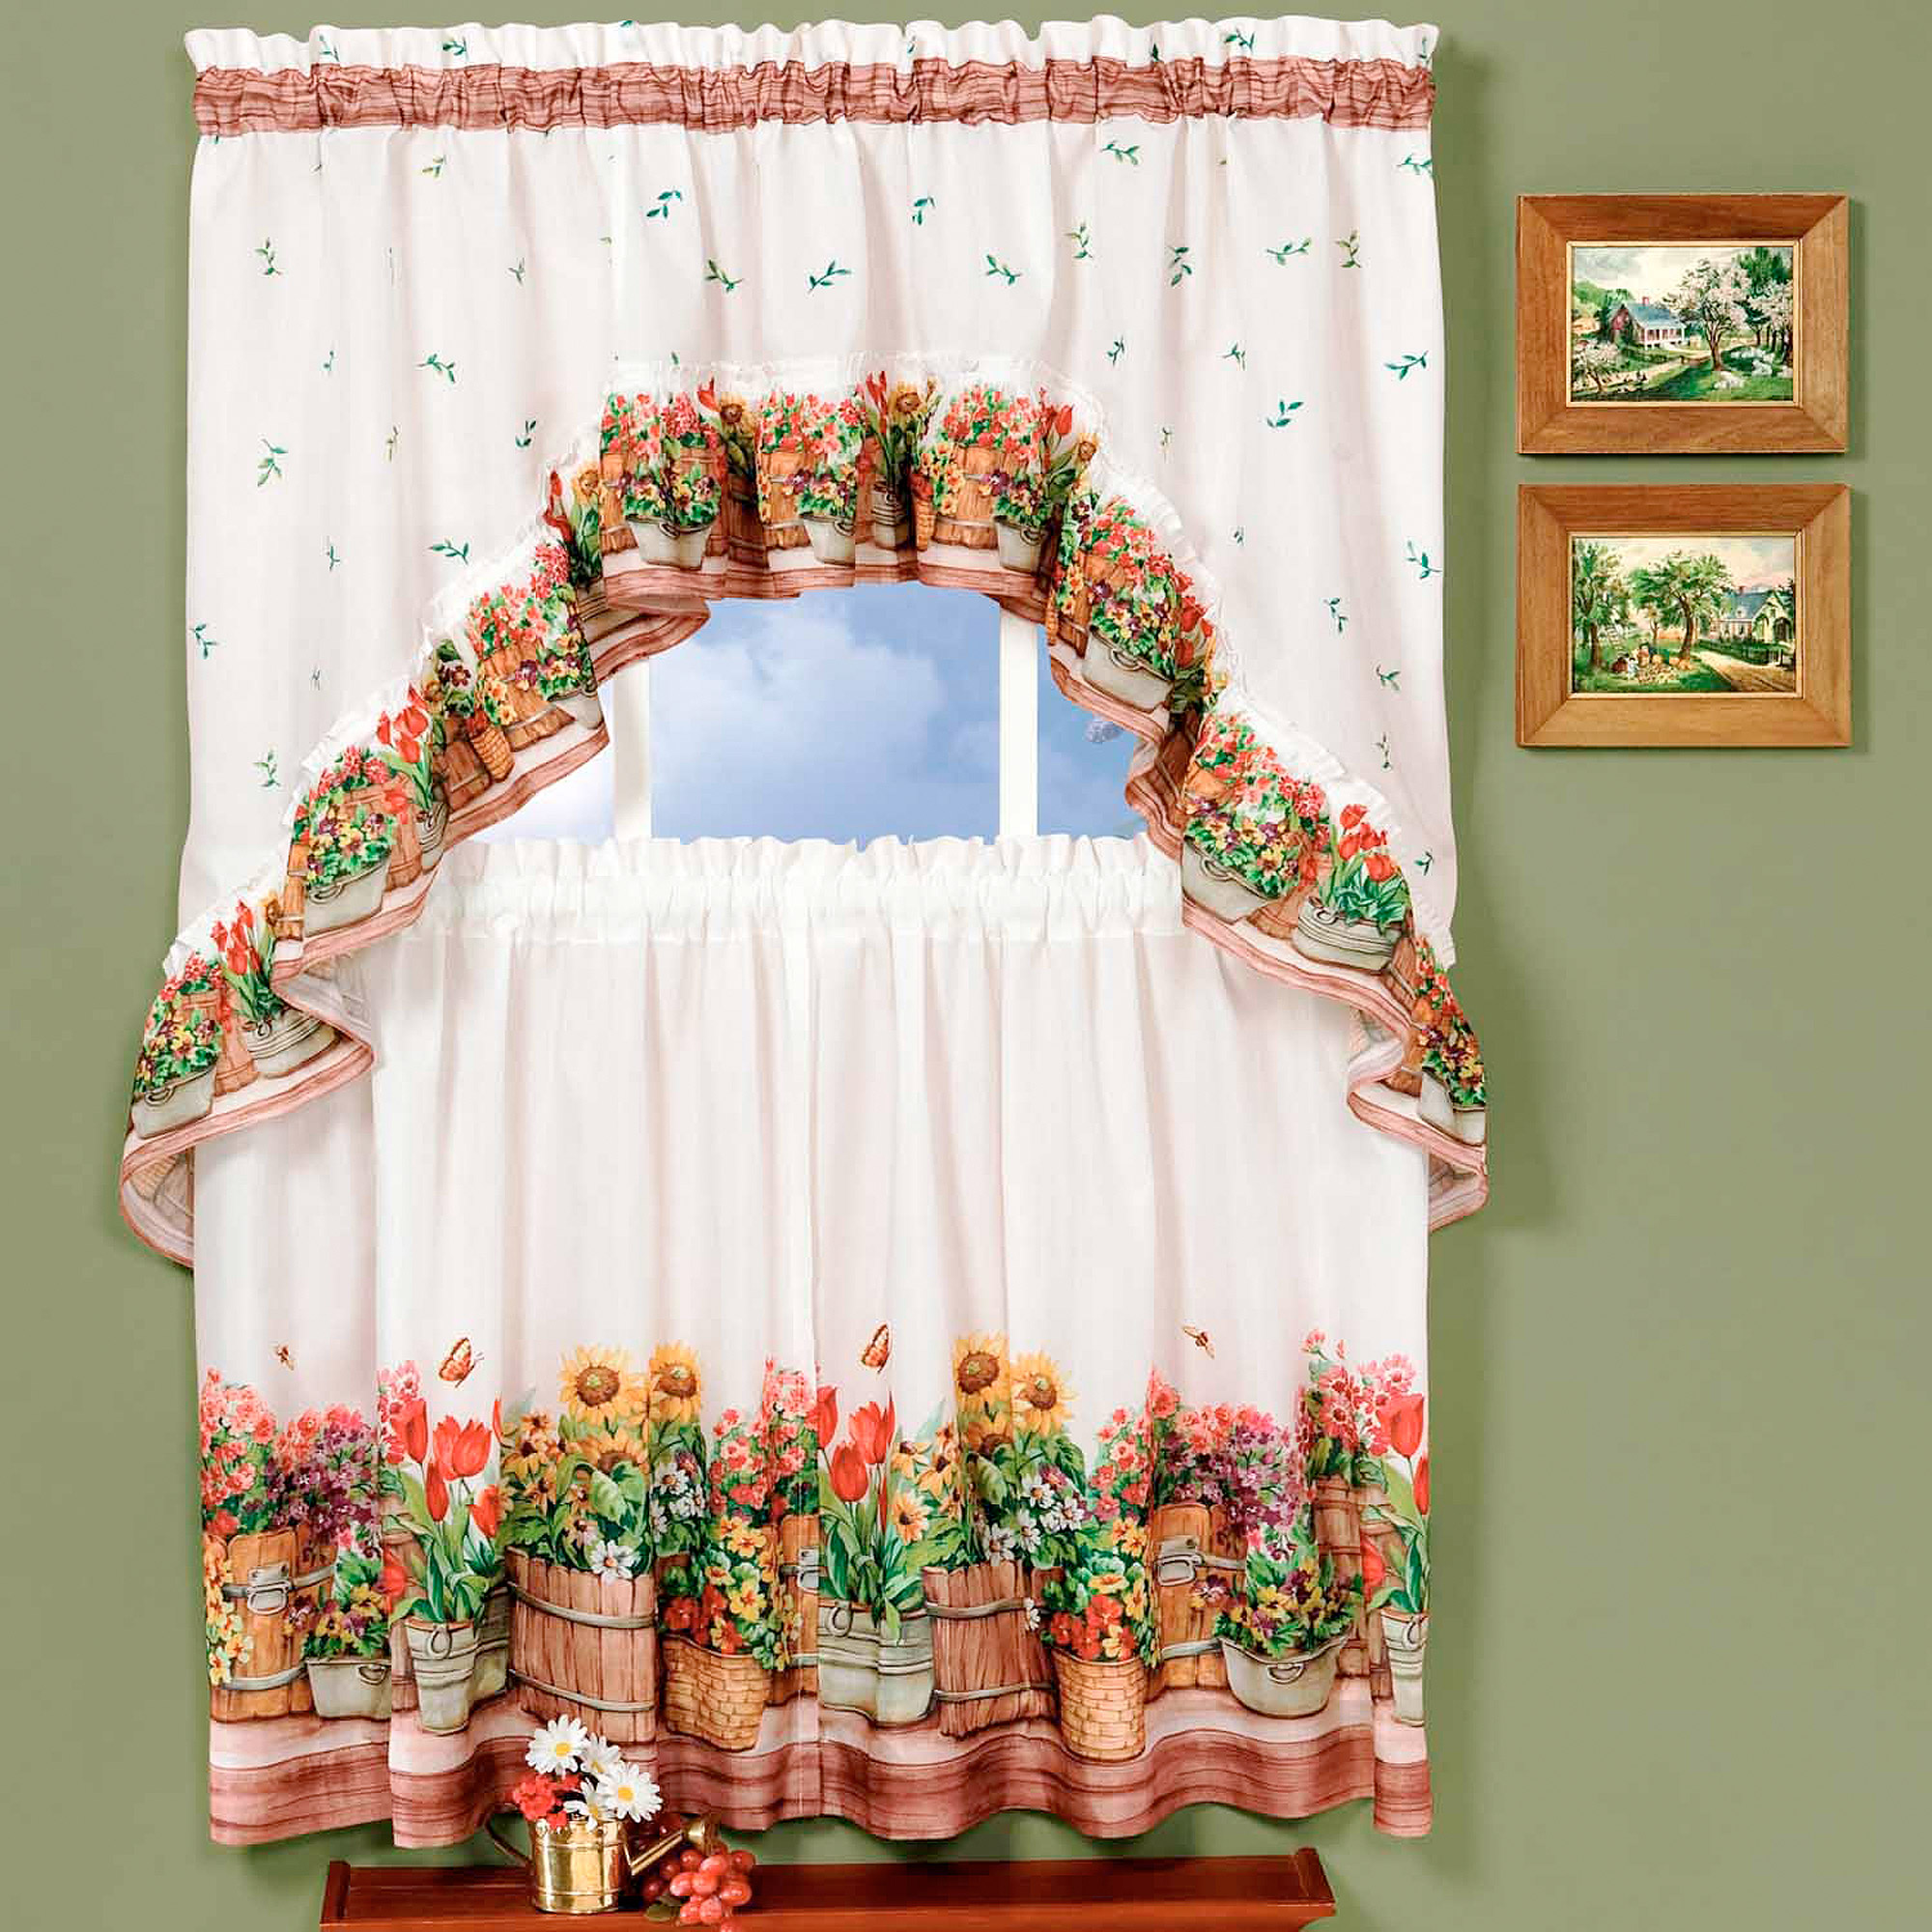 Achim Kitchen Curtain and Swag Set, Country Garden